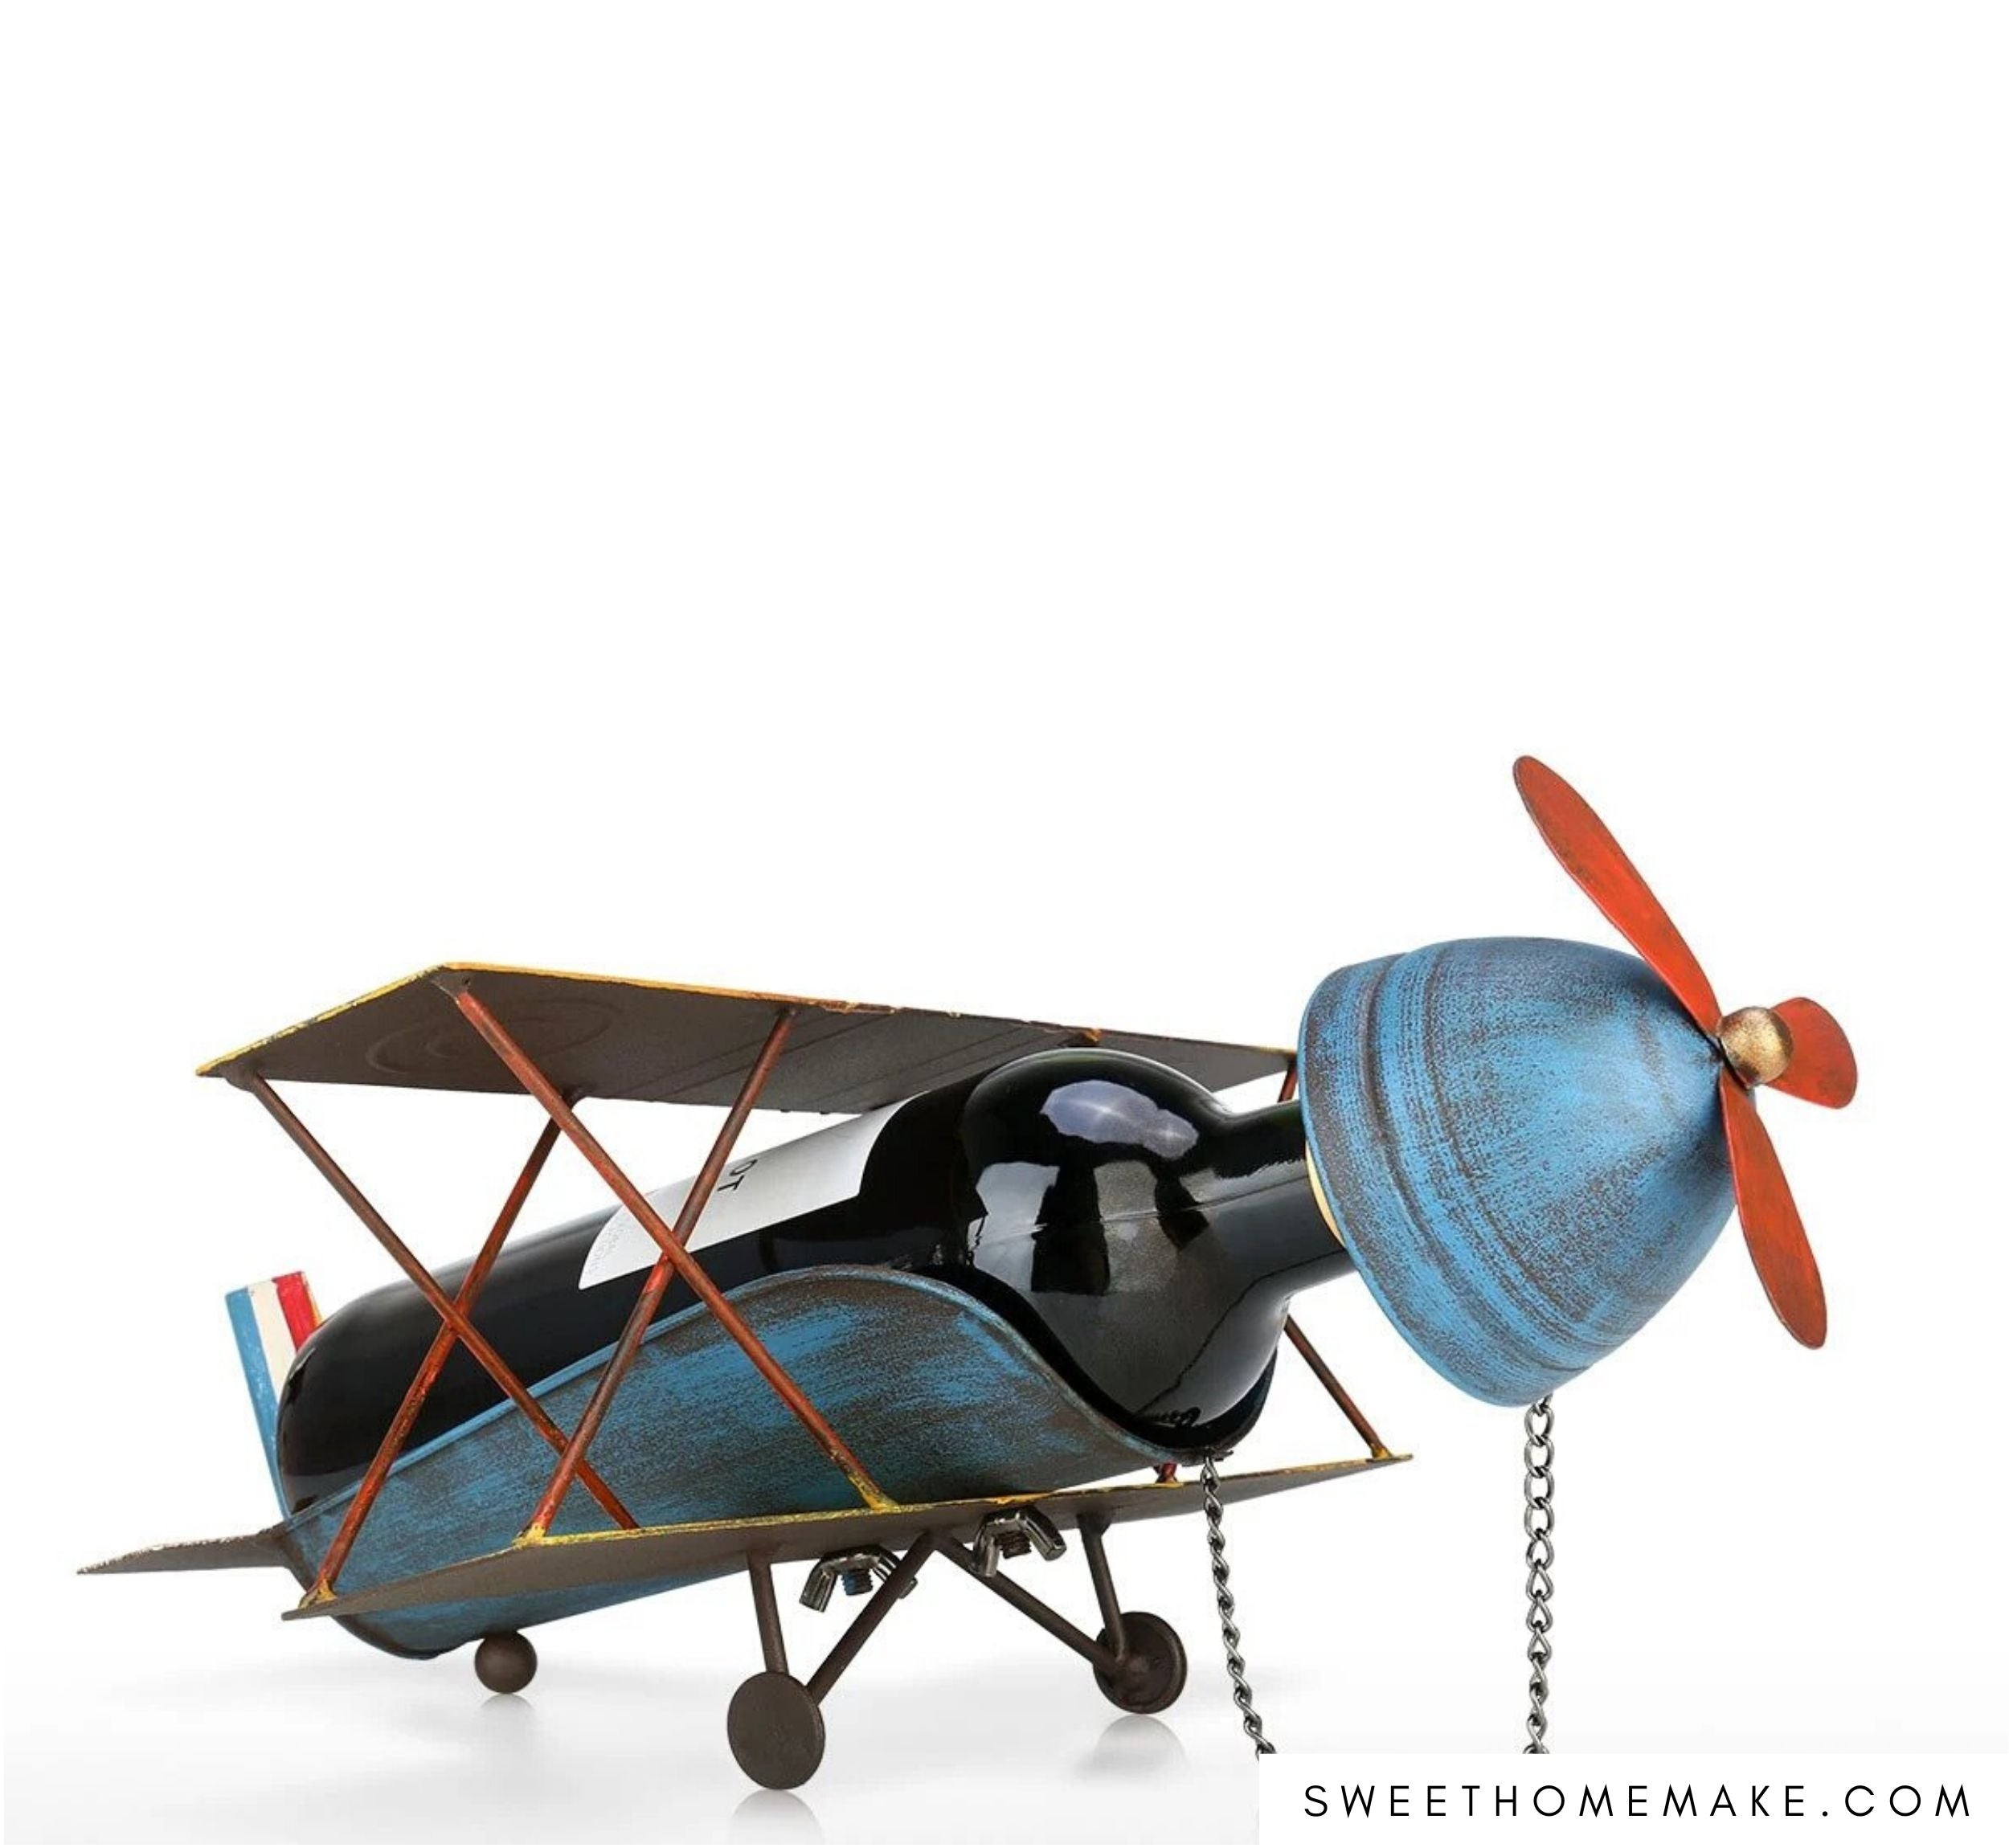 Vintage Airplane Decor in Home or Office